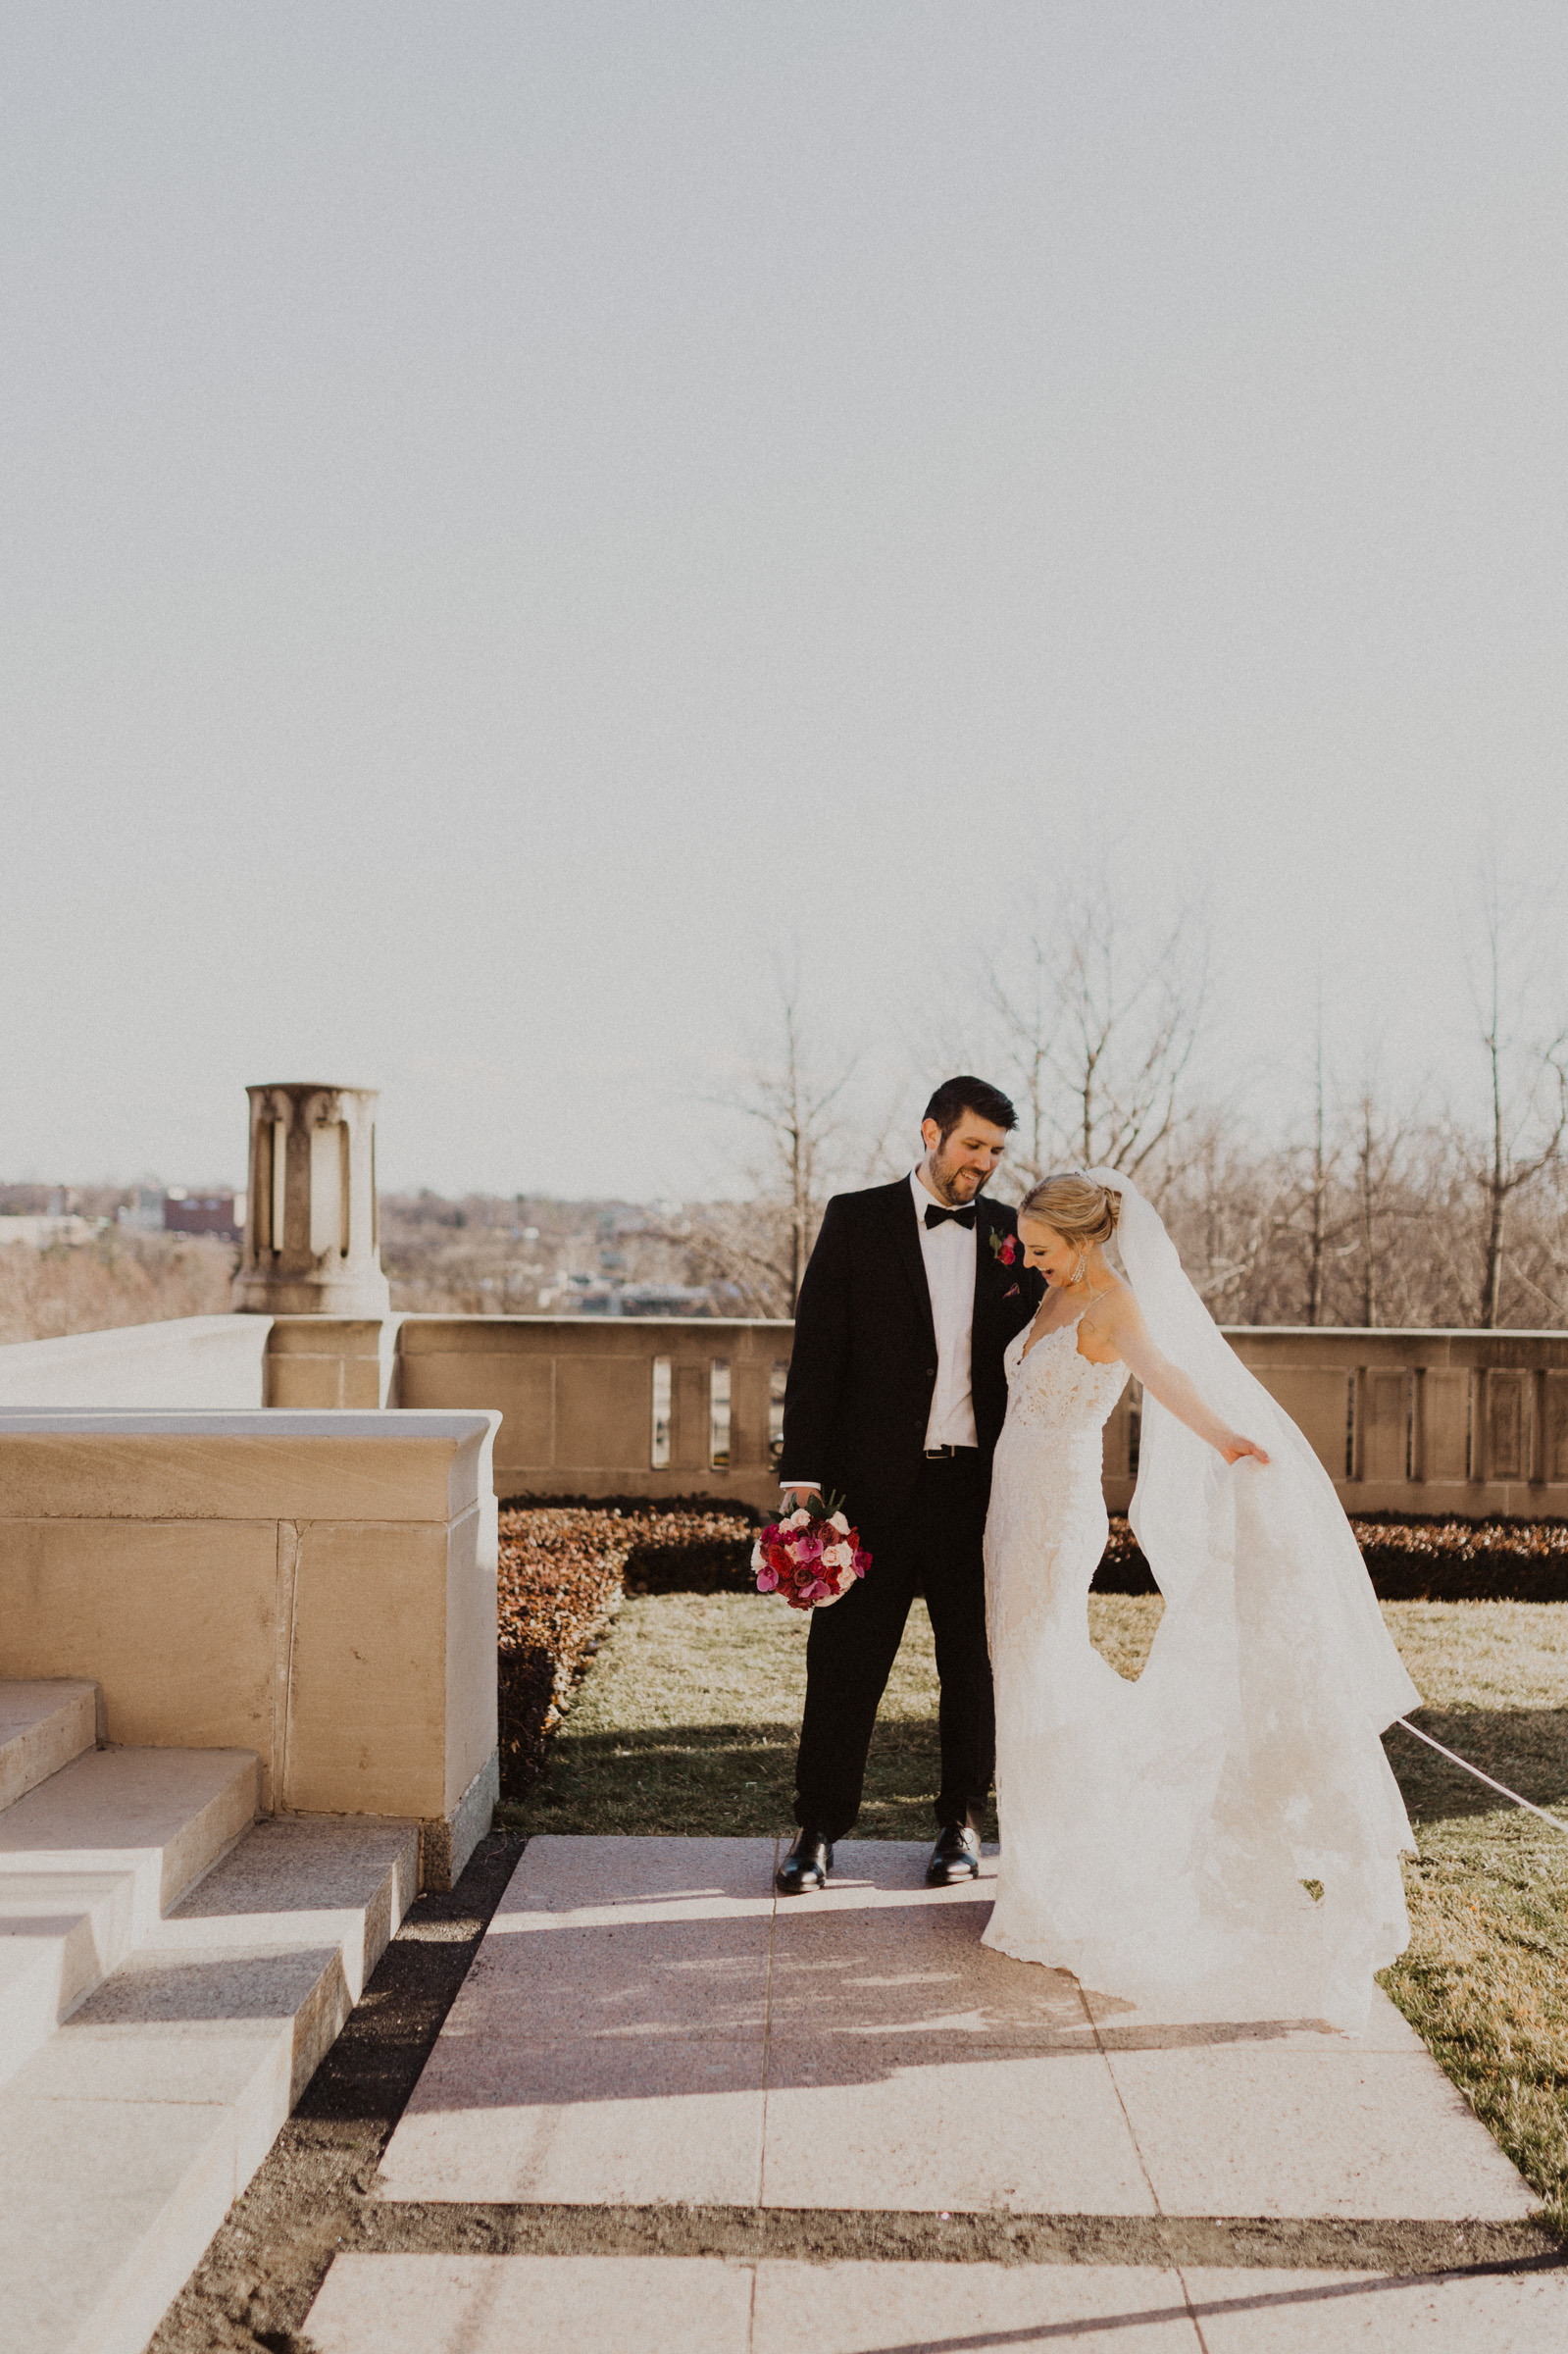 alyssa barletter photography nelson atkins museum intimate romantic spring wedding pilgrim chapel kcmo-32.jpg